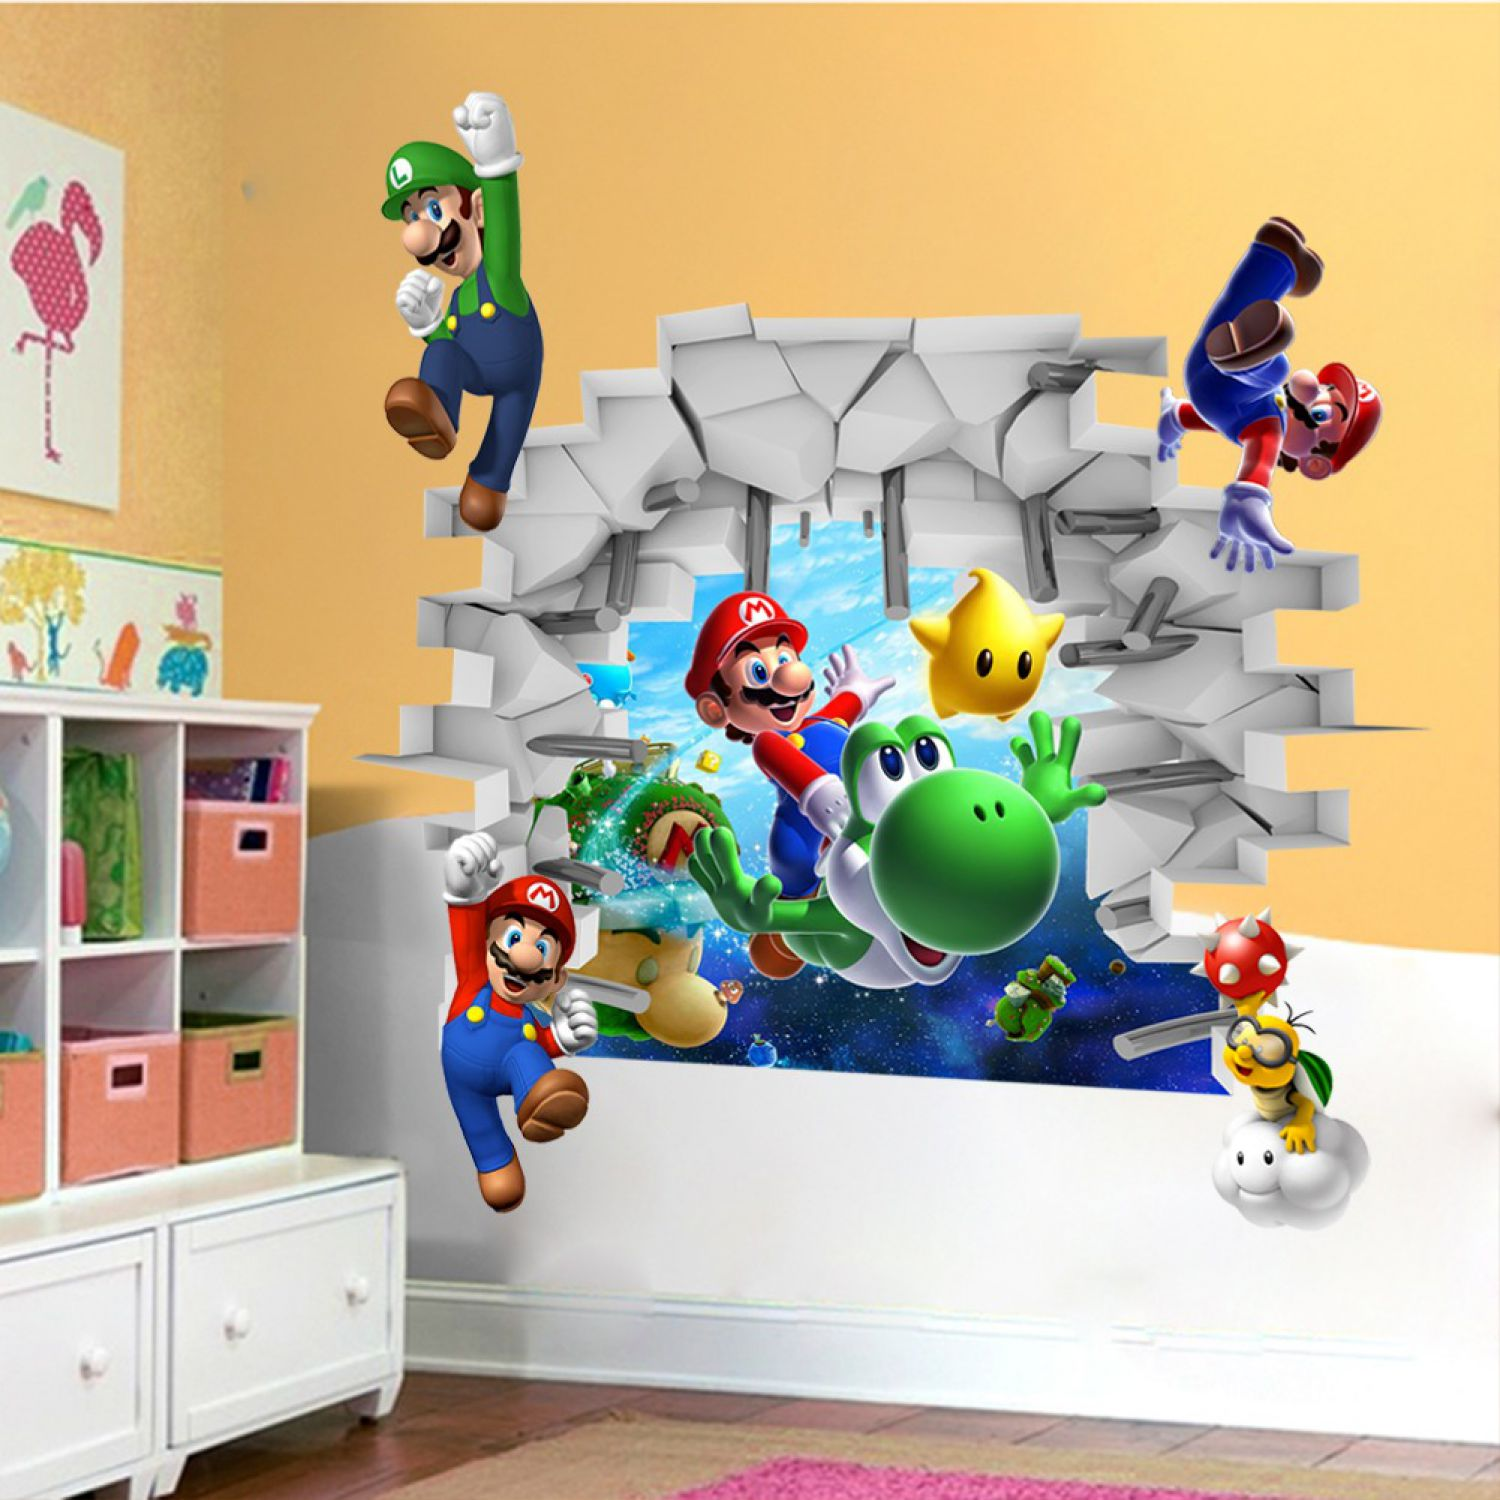 super mario world 3d wandsticker wandtattoo yoshi aufkleber kinderzimmer sticker ebay. Black Bedroom Furniture Sets. Home Design Ideas